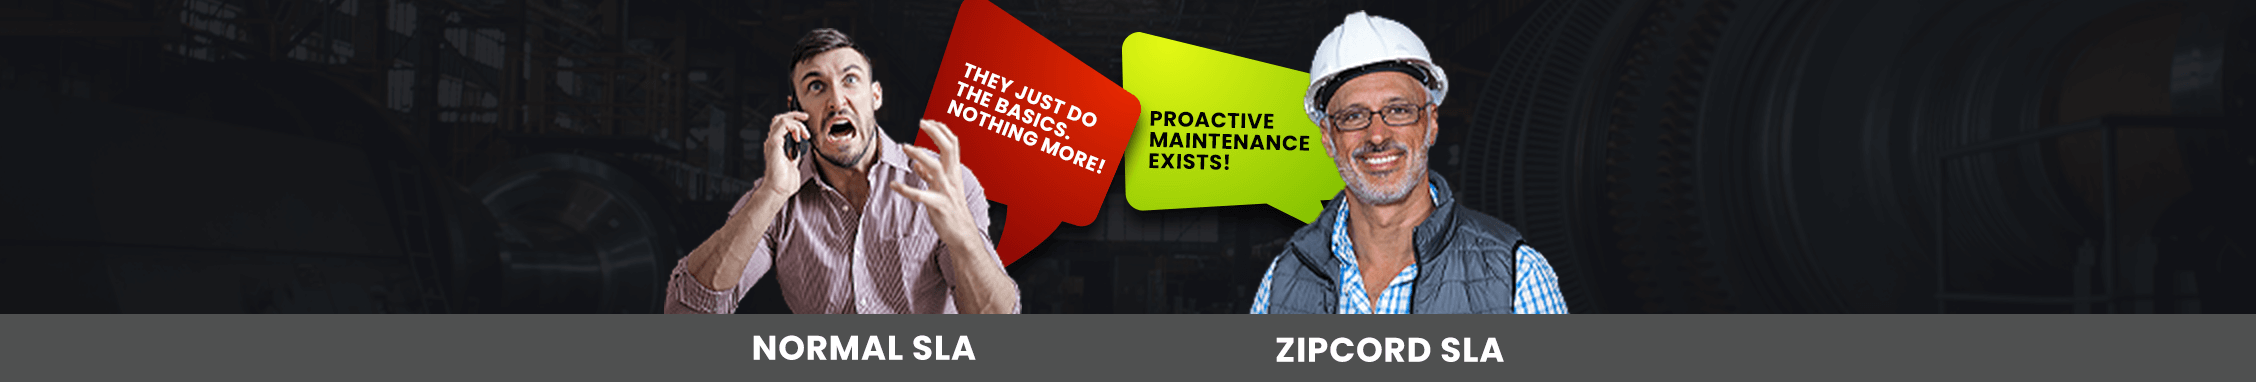 Service Level Agreements are better with Zipcord